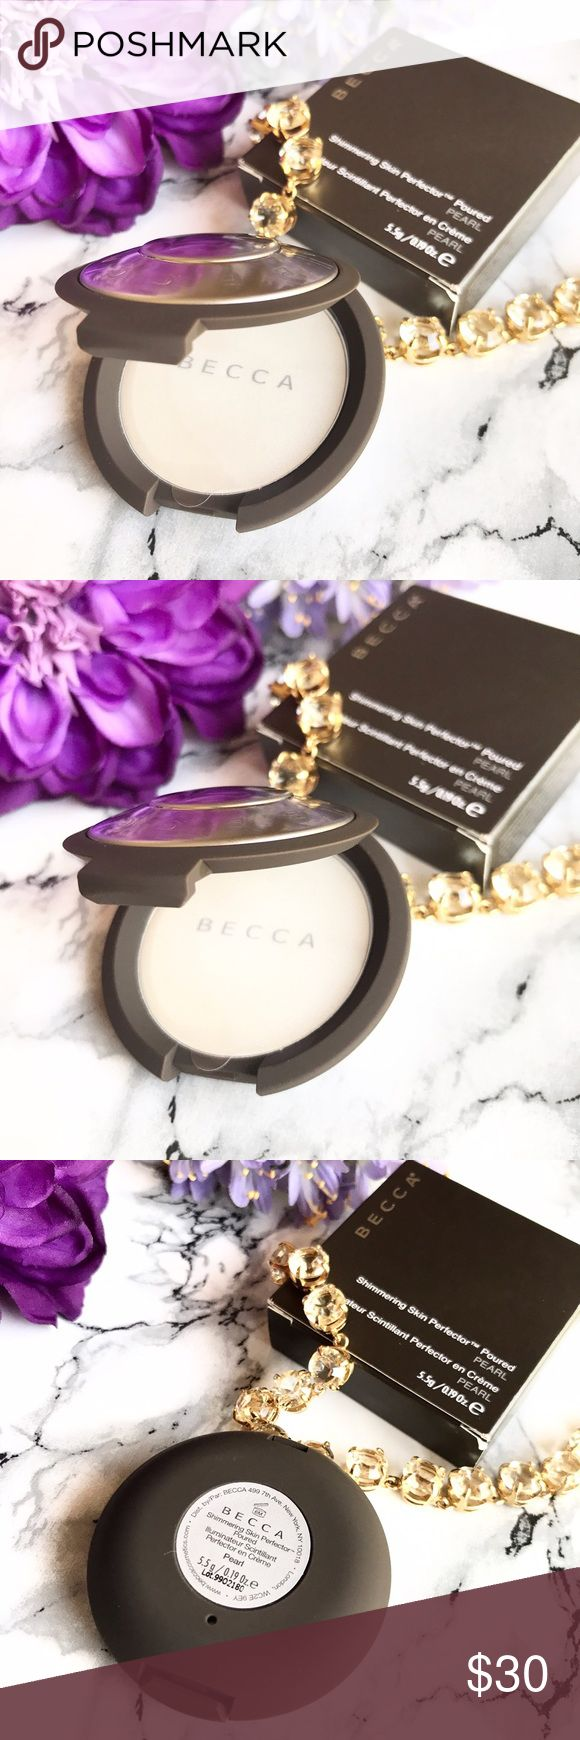 🆕 NEW 🌷 Becca Skin Perfector Poured PEARL -Full 🆕 NEW 🌷 Becca Shimmering Skin Perfector Poured PEARL 🍃 Full Size * Brand new * Never Used * Never Swatched. 🍃 Perfect for Fair to Light skin tone 🍃 cult favorite! 💕 FIRM PRICE 💕 💕 Always NEW, Always AUTHENTIC 💕 BECCA Makeup Luminizer